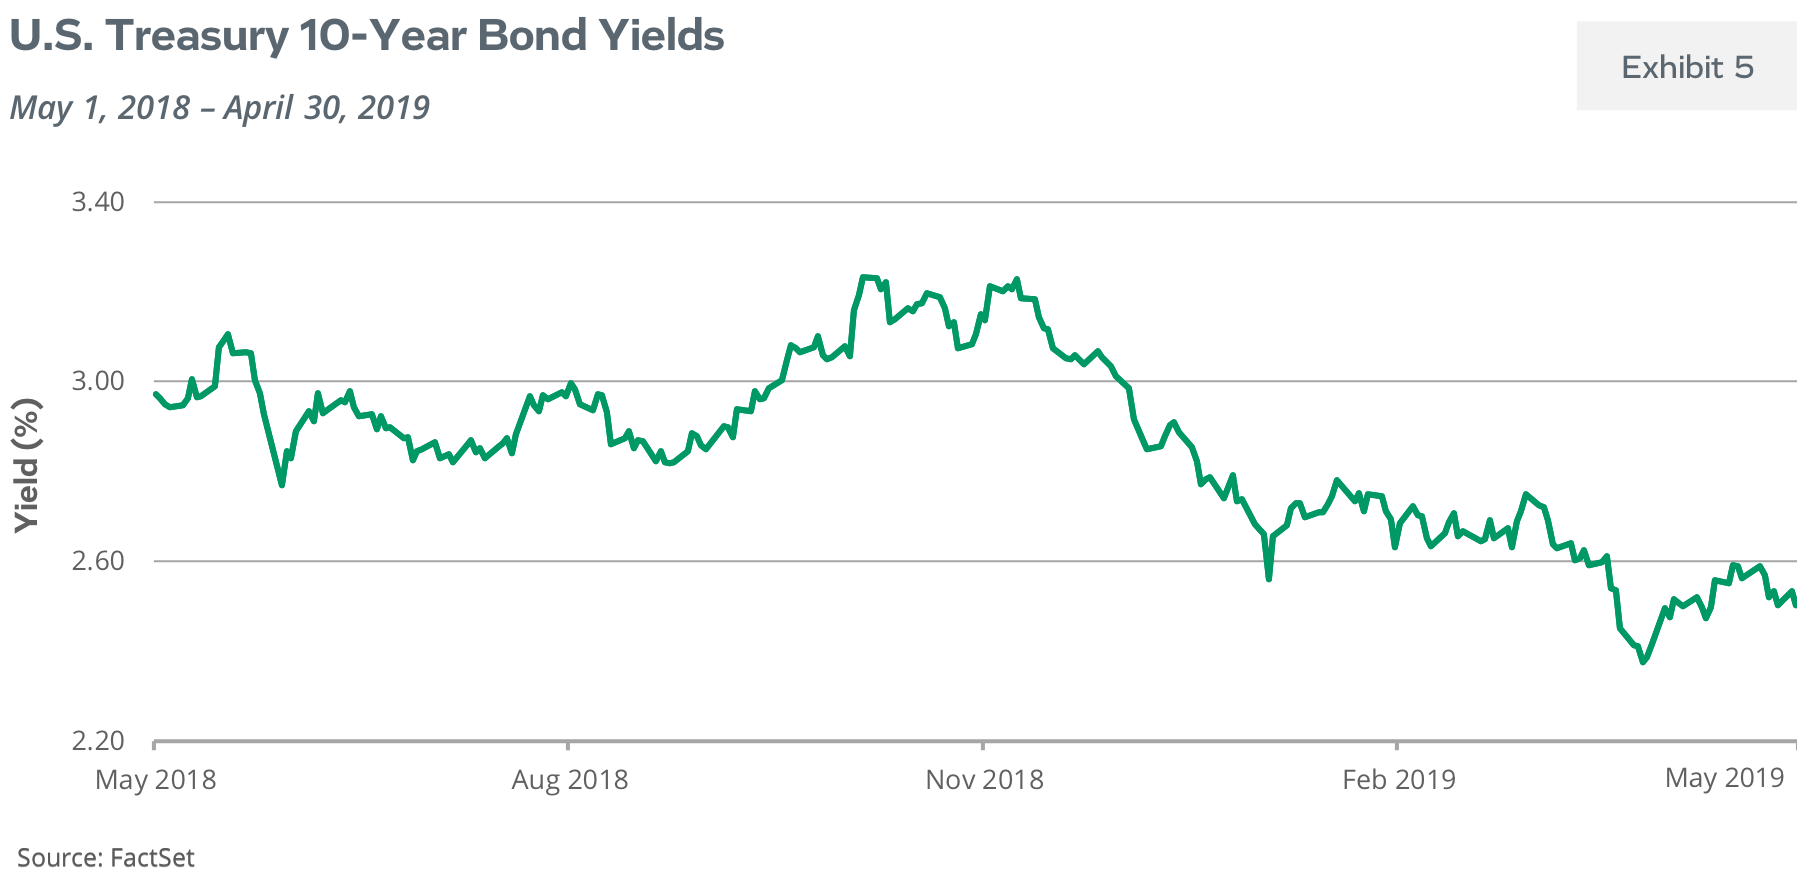 U.S. Treasury 10-Year Bond Yields